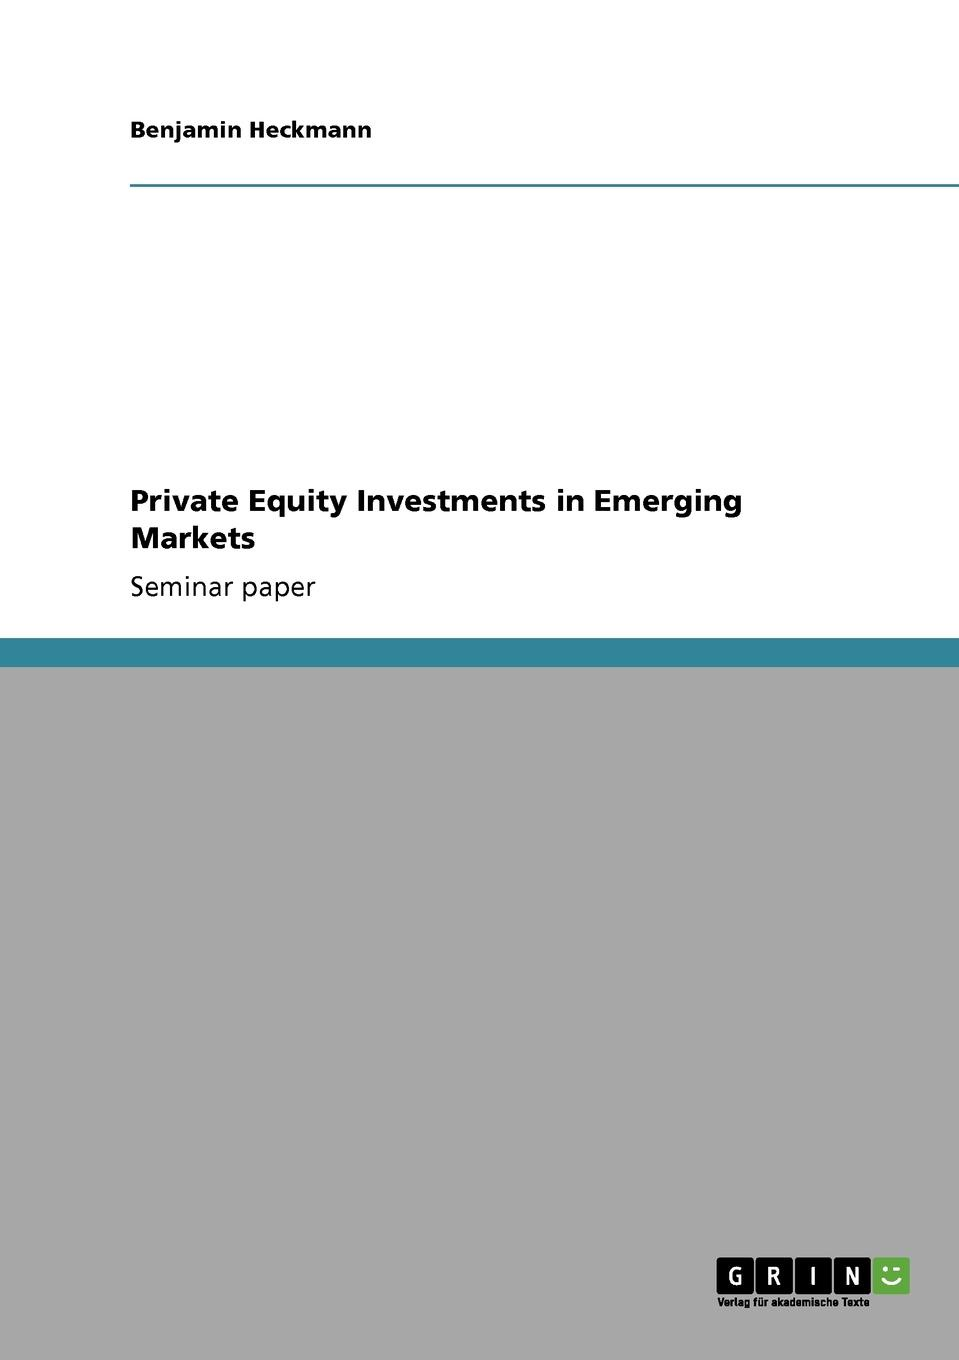 Benjamin Heckmann Private Equity Investments in Emerging Markets john mauldin the little book of bull s eye investing finding value generating absolute returns and controlling risk in turbulent markets